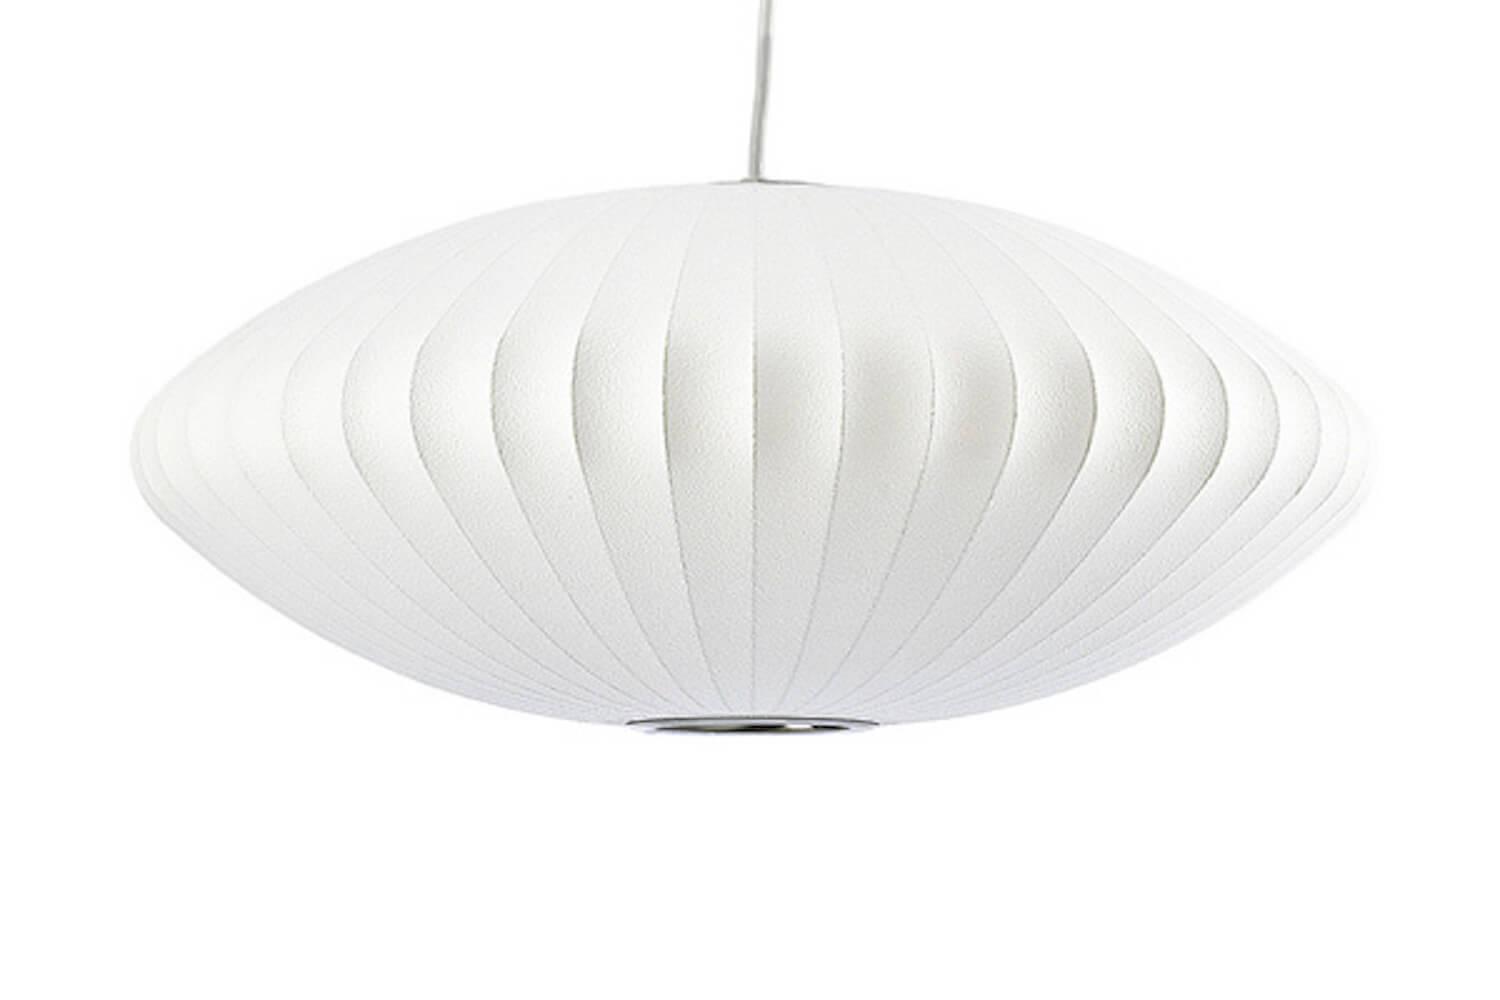 George Nelson Bubble Lamp | Spence & Lyda